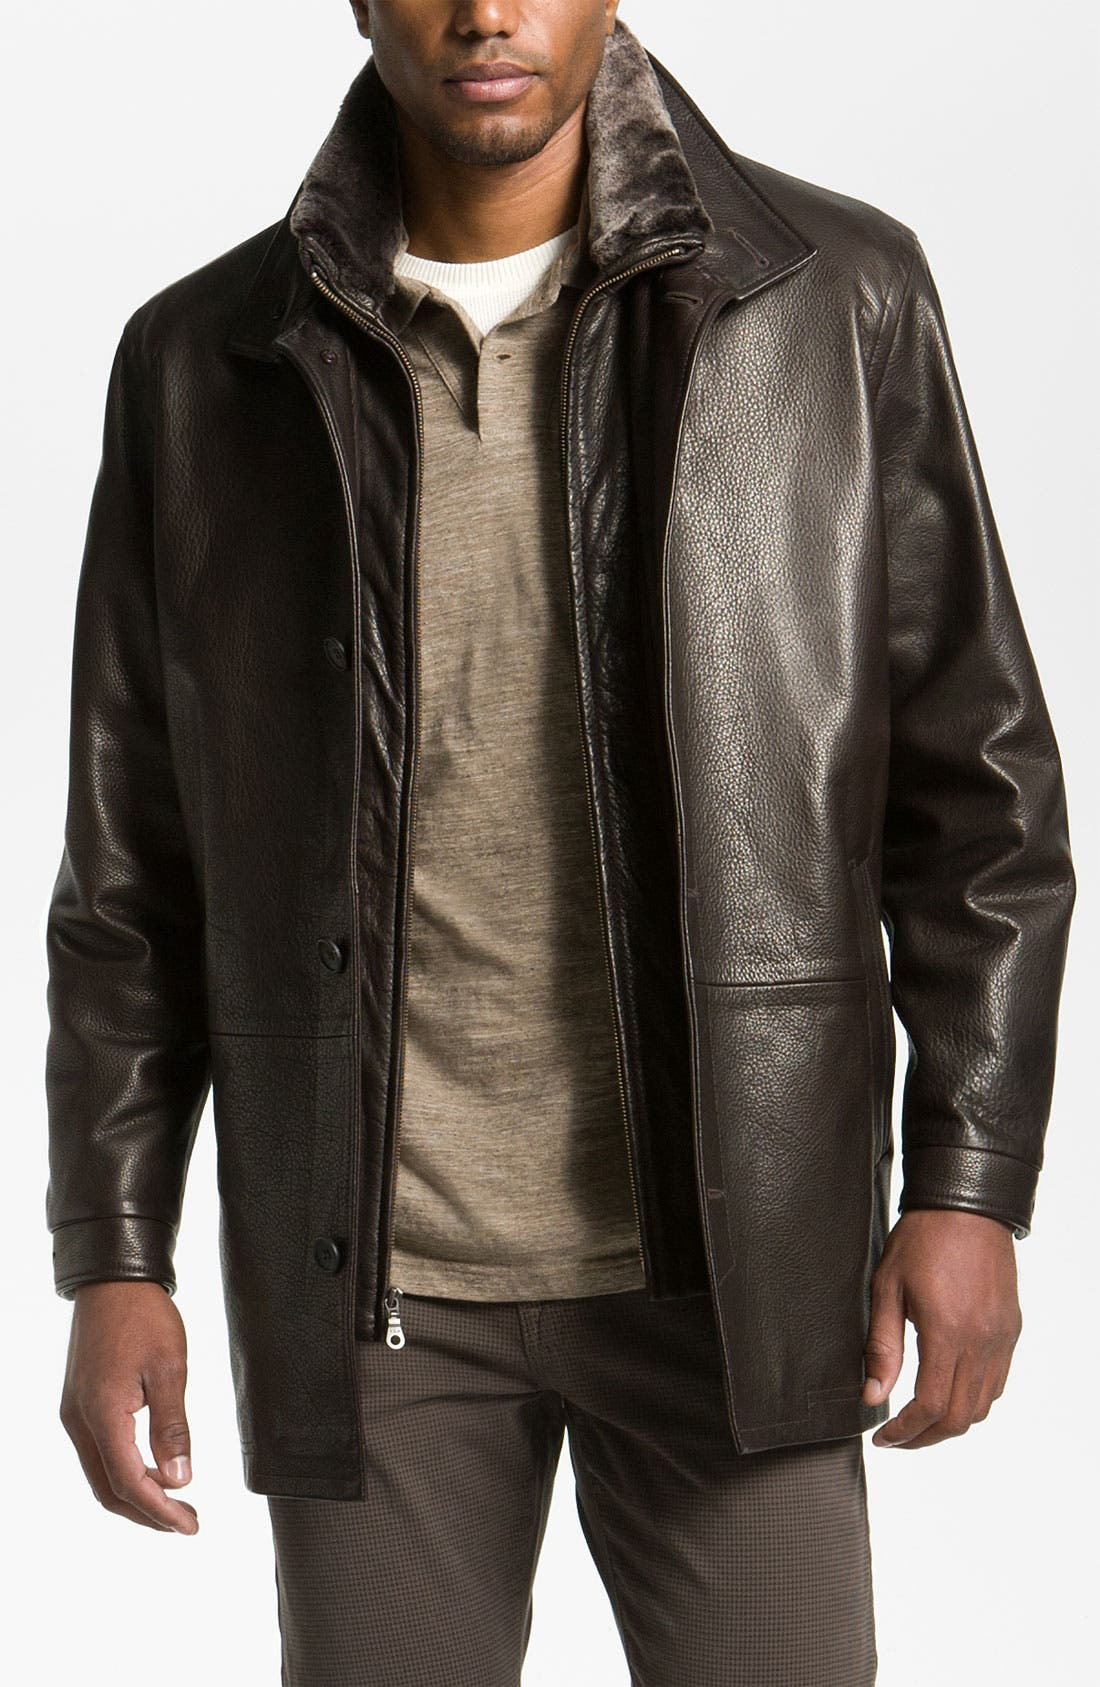 REMY LEATHER Calfskin Leather Jacket, Main, color, 205